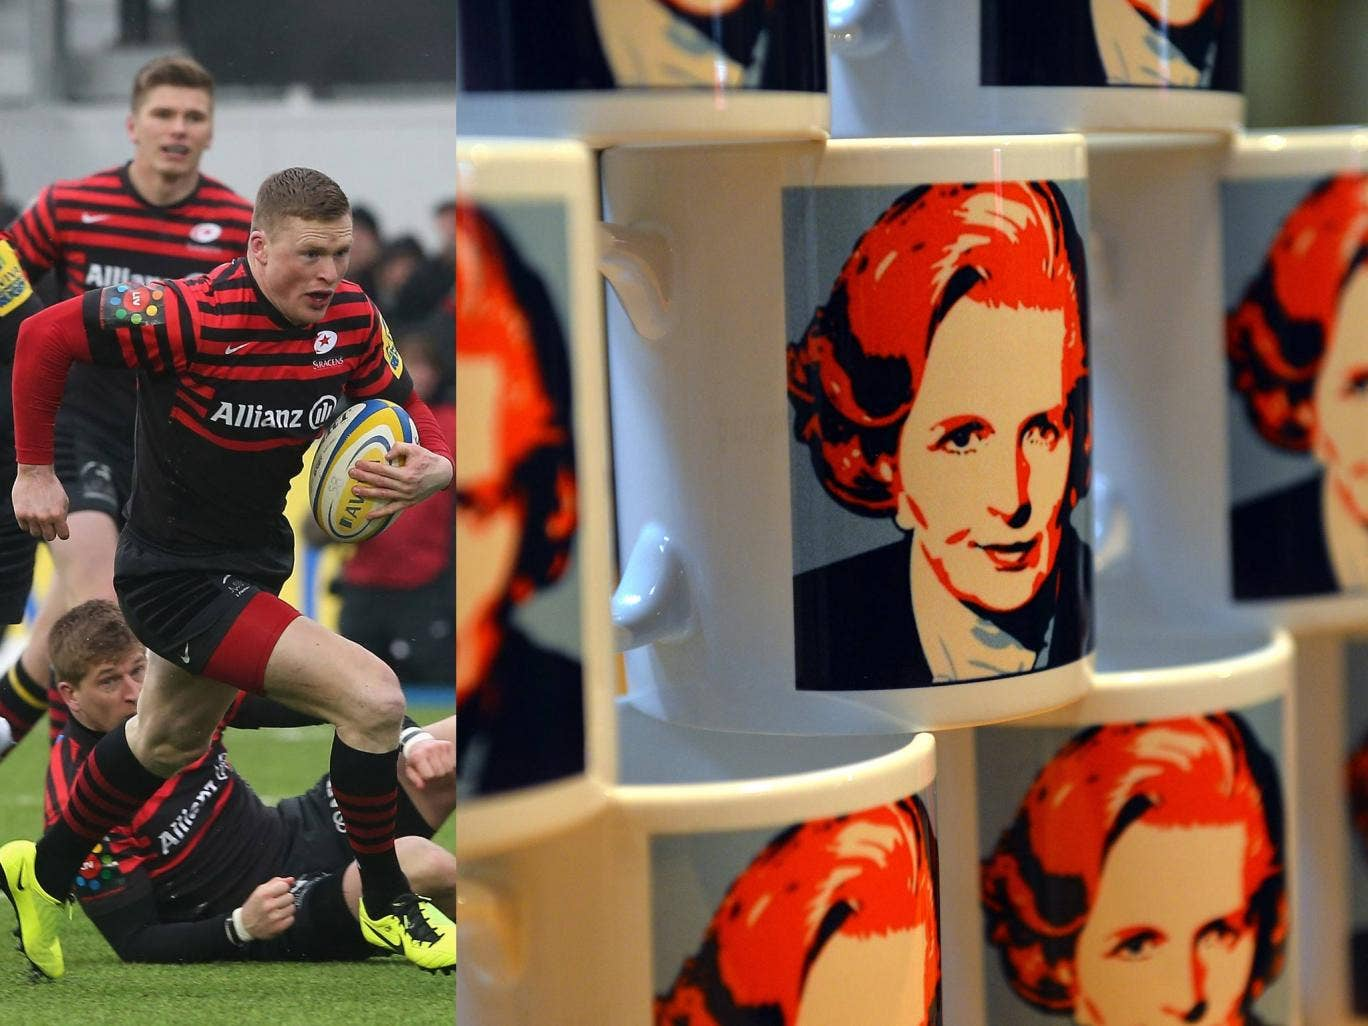 Saracens will hold a minute's silence before game this weekend